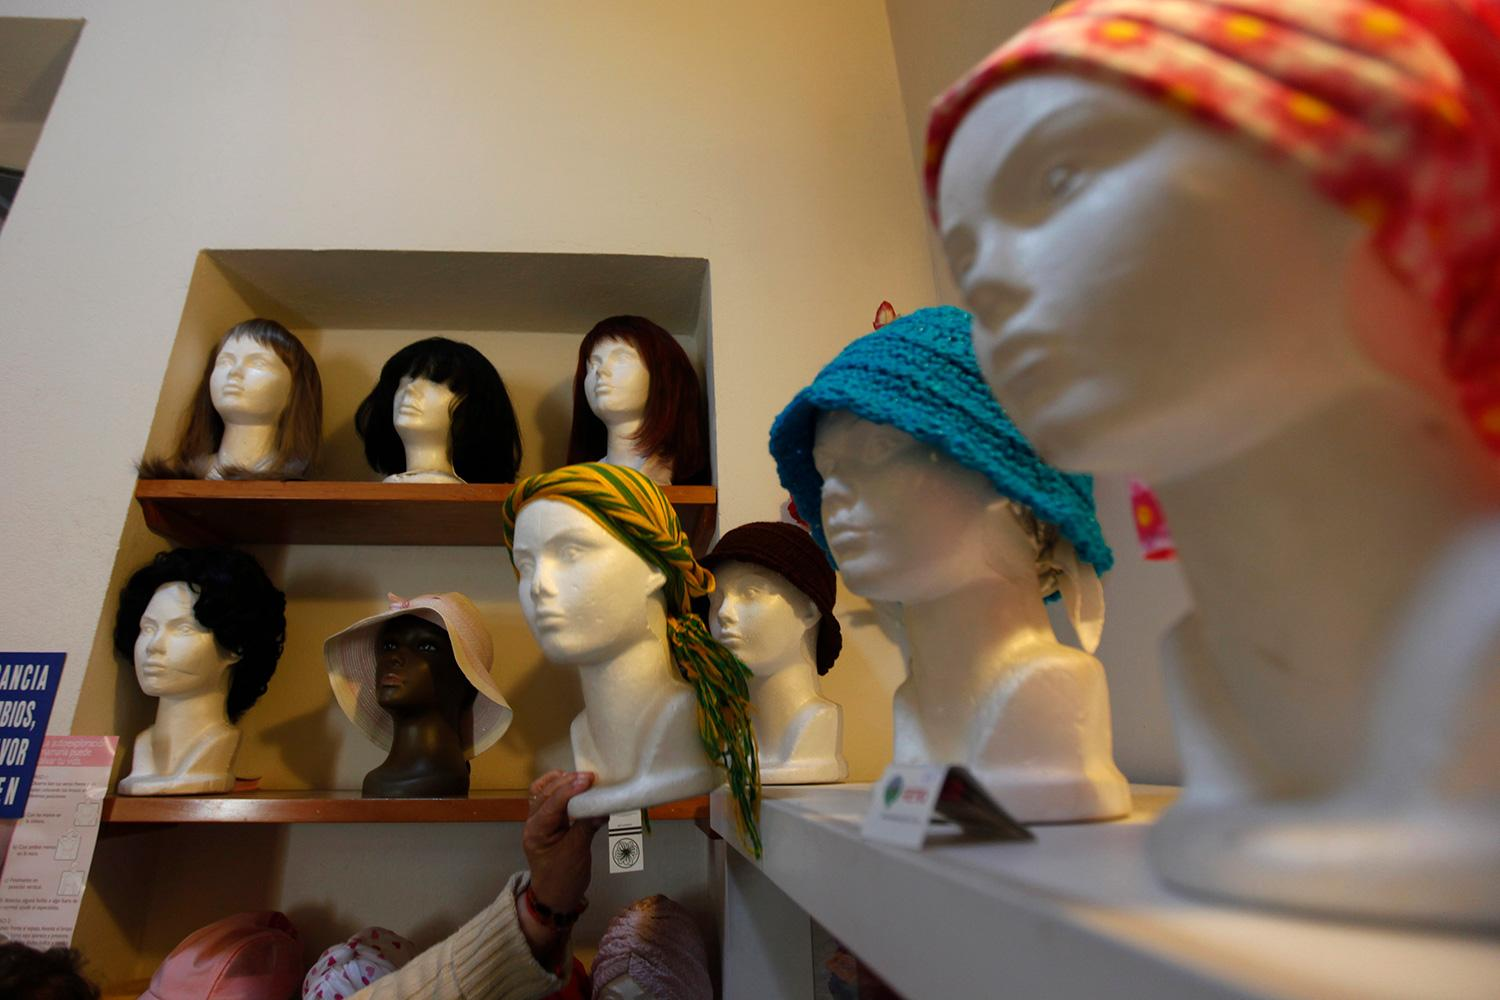 """Wigs and head scarves for patients with breast cancer are seen on mannequins at a center run by the """"Reto"""" Group for Full Recovery of Breast Cancer in Mexico City October 18, 2012. The photo shows a room with mannequin heads and wigs. REUTERS/Edgard Garrido"""